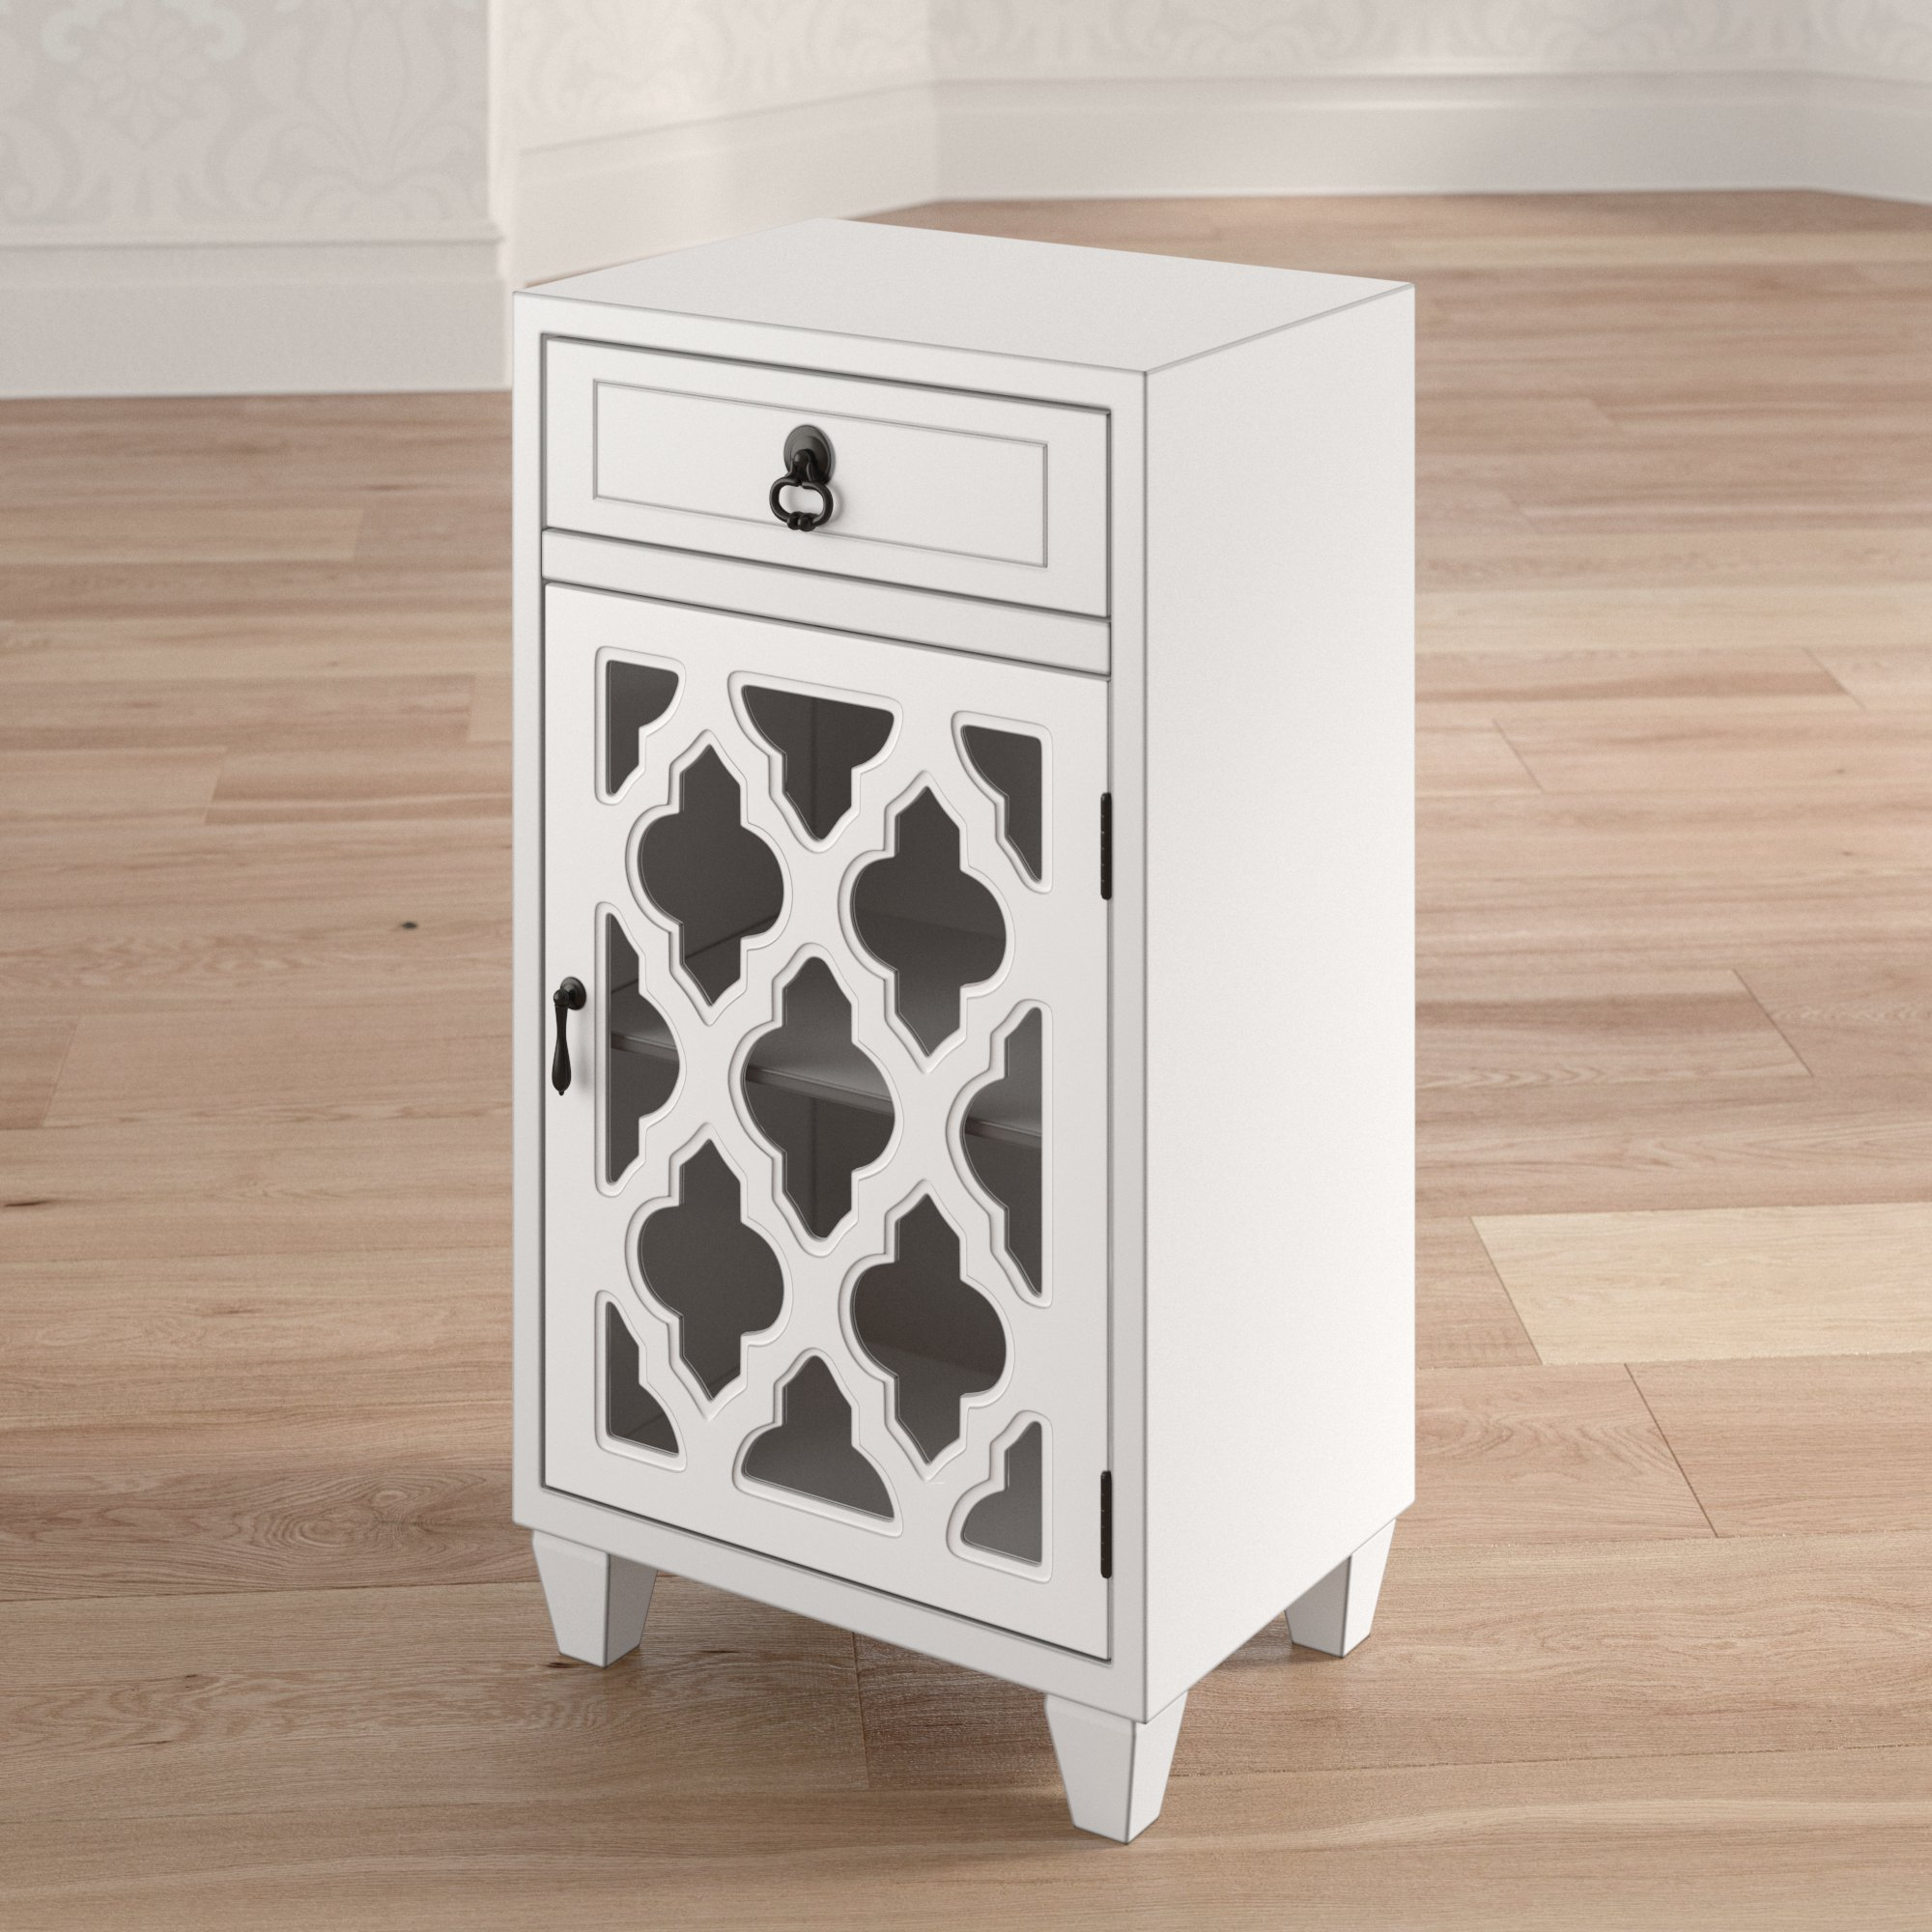 mistana fairhills drawer and door accent cabinet with glass insert table drawers doors reviews pub garden furniture mini coffee platform ikea round mirror white dining set side